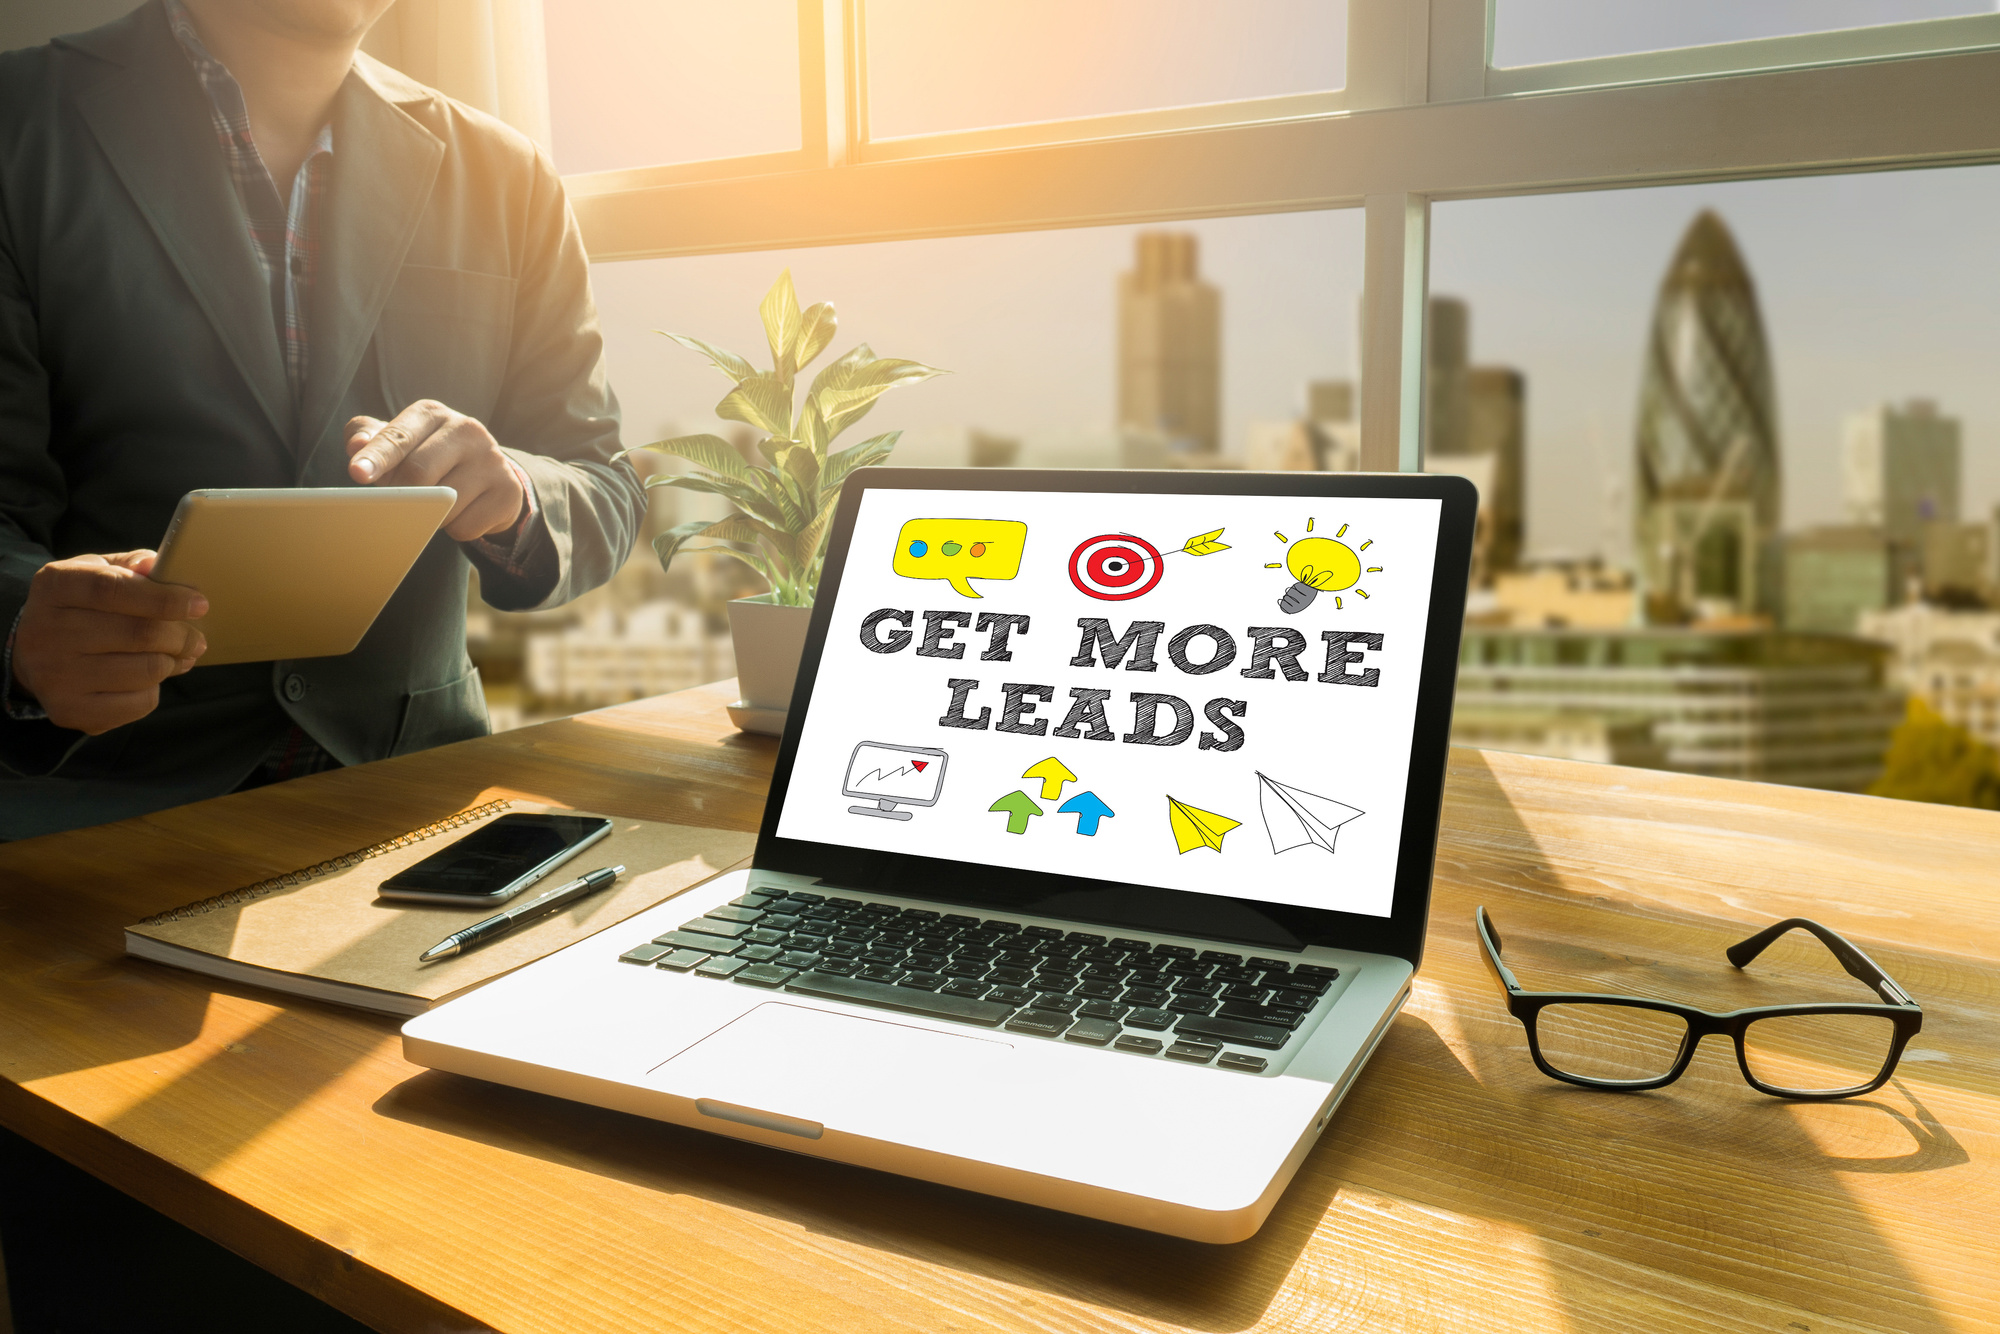 How to Get More Leads: 6 Useful Tips